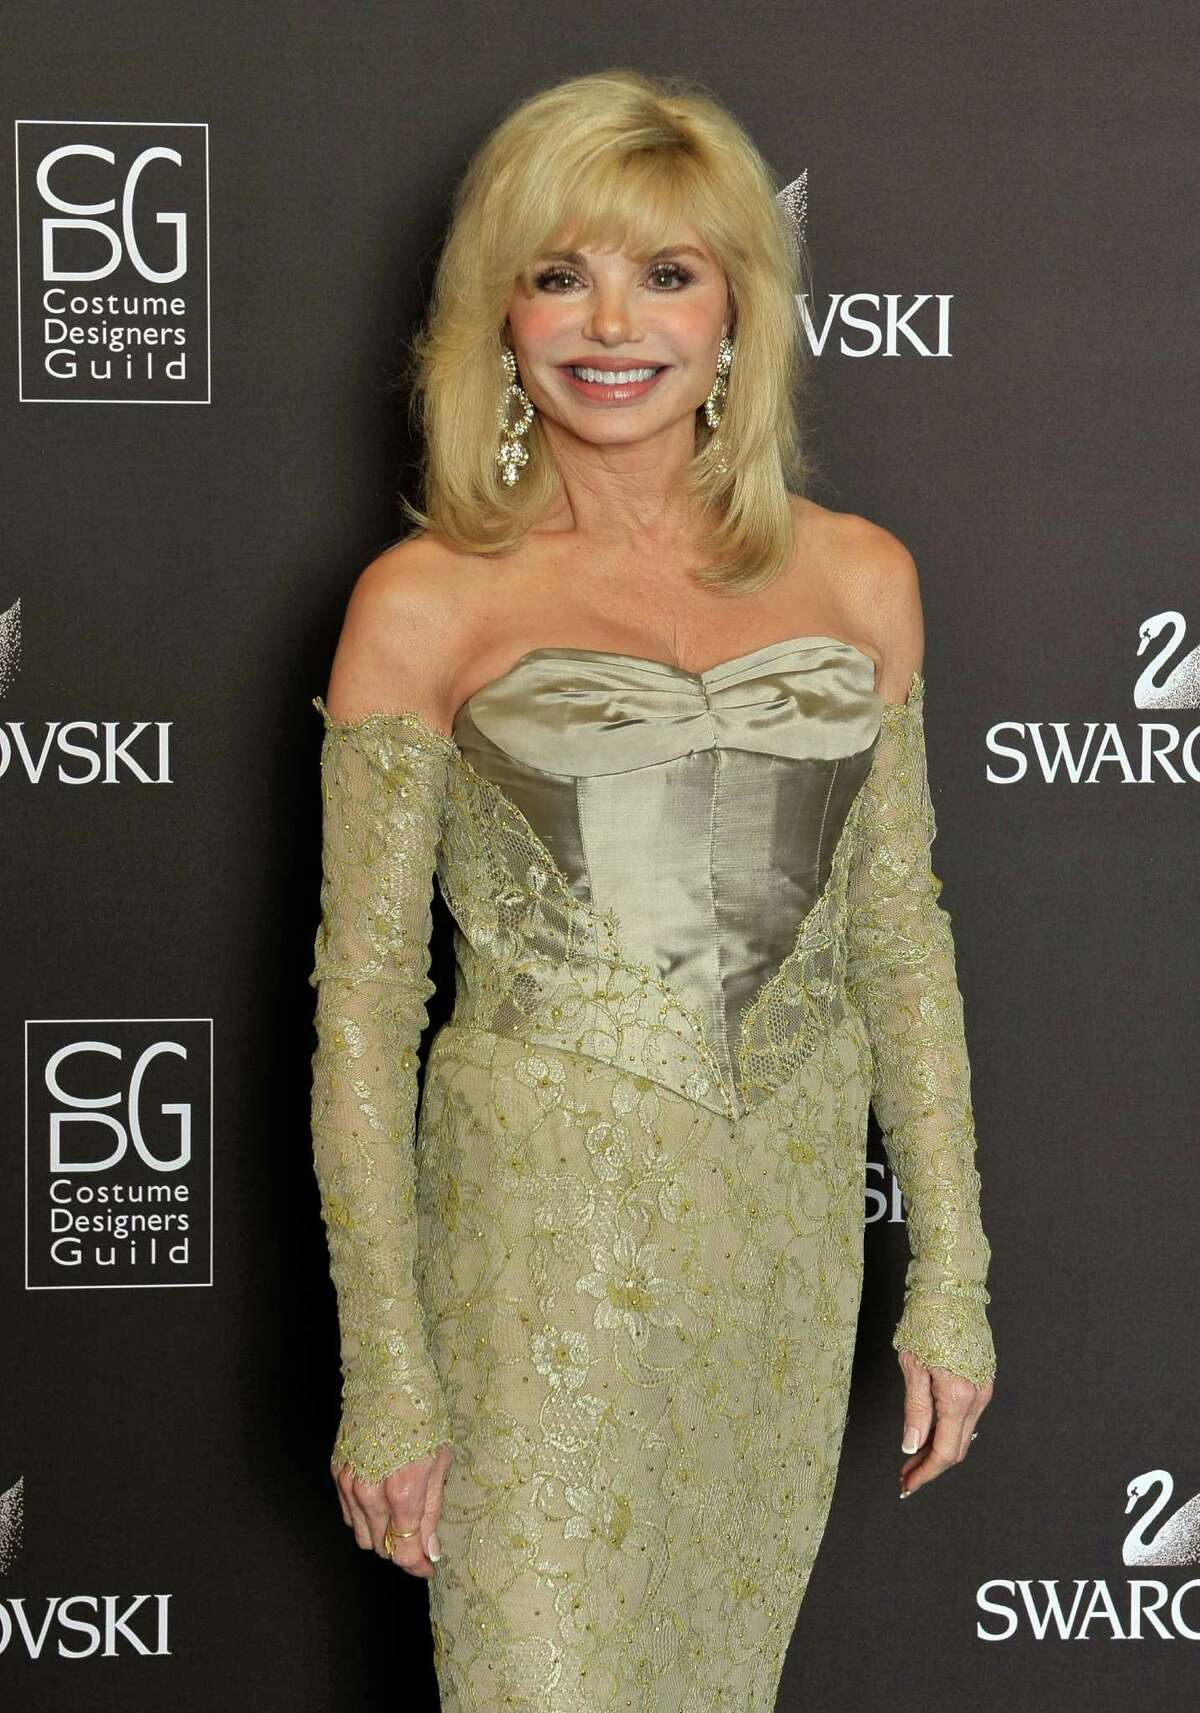 BEVERLY HILLS, CA - FEBRUARY 25: Actress Loni Anderson backstage during the 12th Annual Costume Designers Guild Awards with Presenting Sponsor Swarovski at The Beverly Hilton hotel on February 25, 2010 in Beverly Hills, California. (Photo by Charley Gallay/Getty Images for CDG)